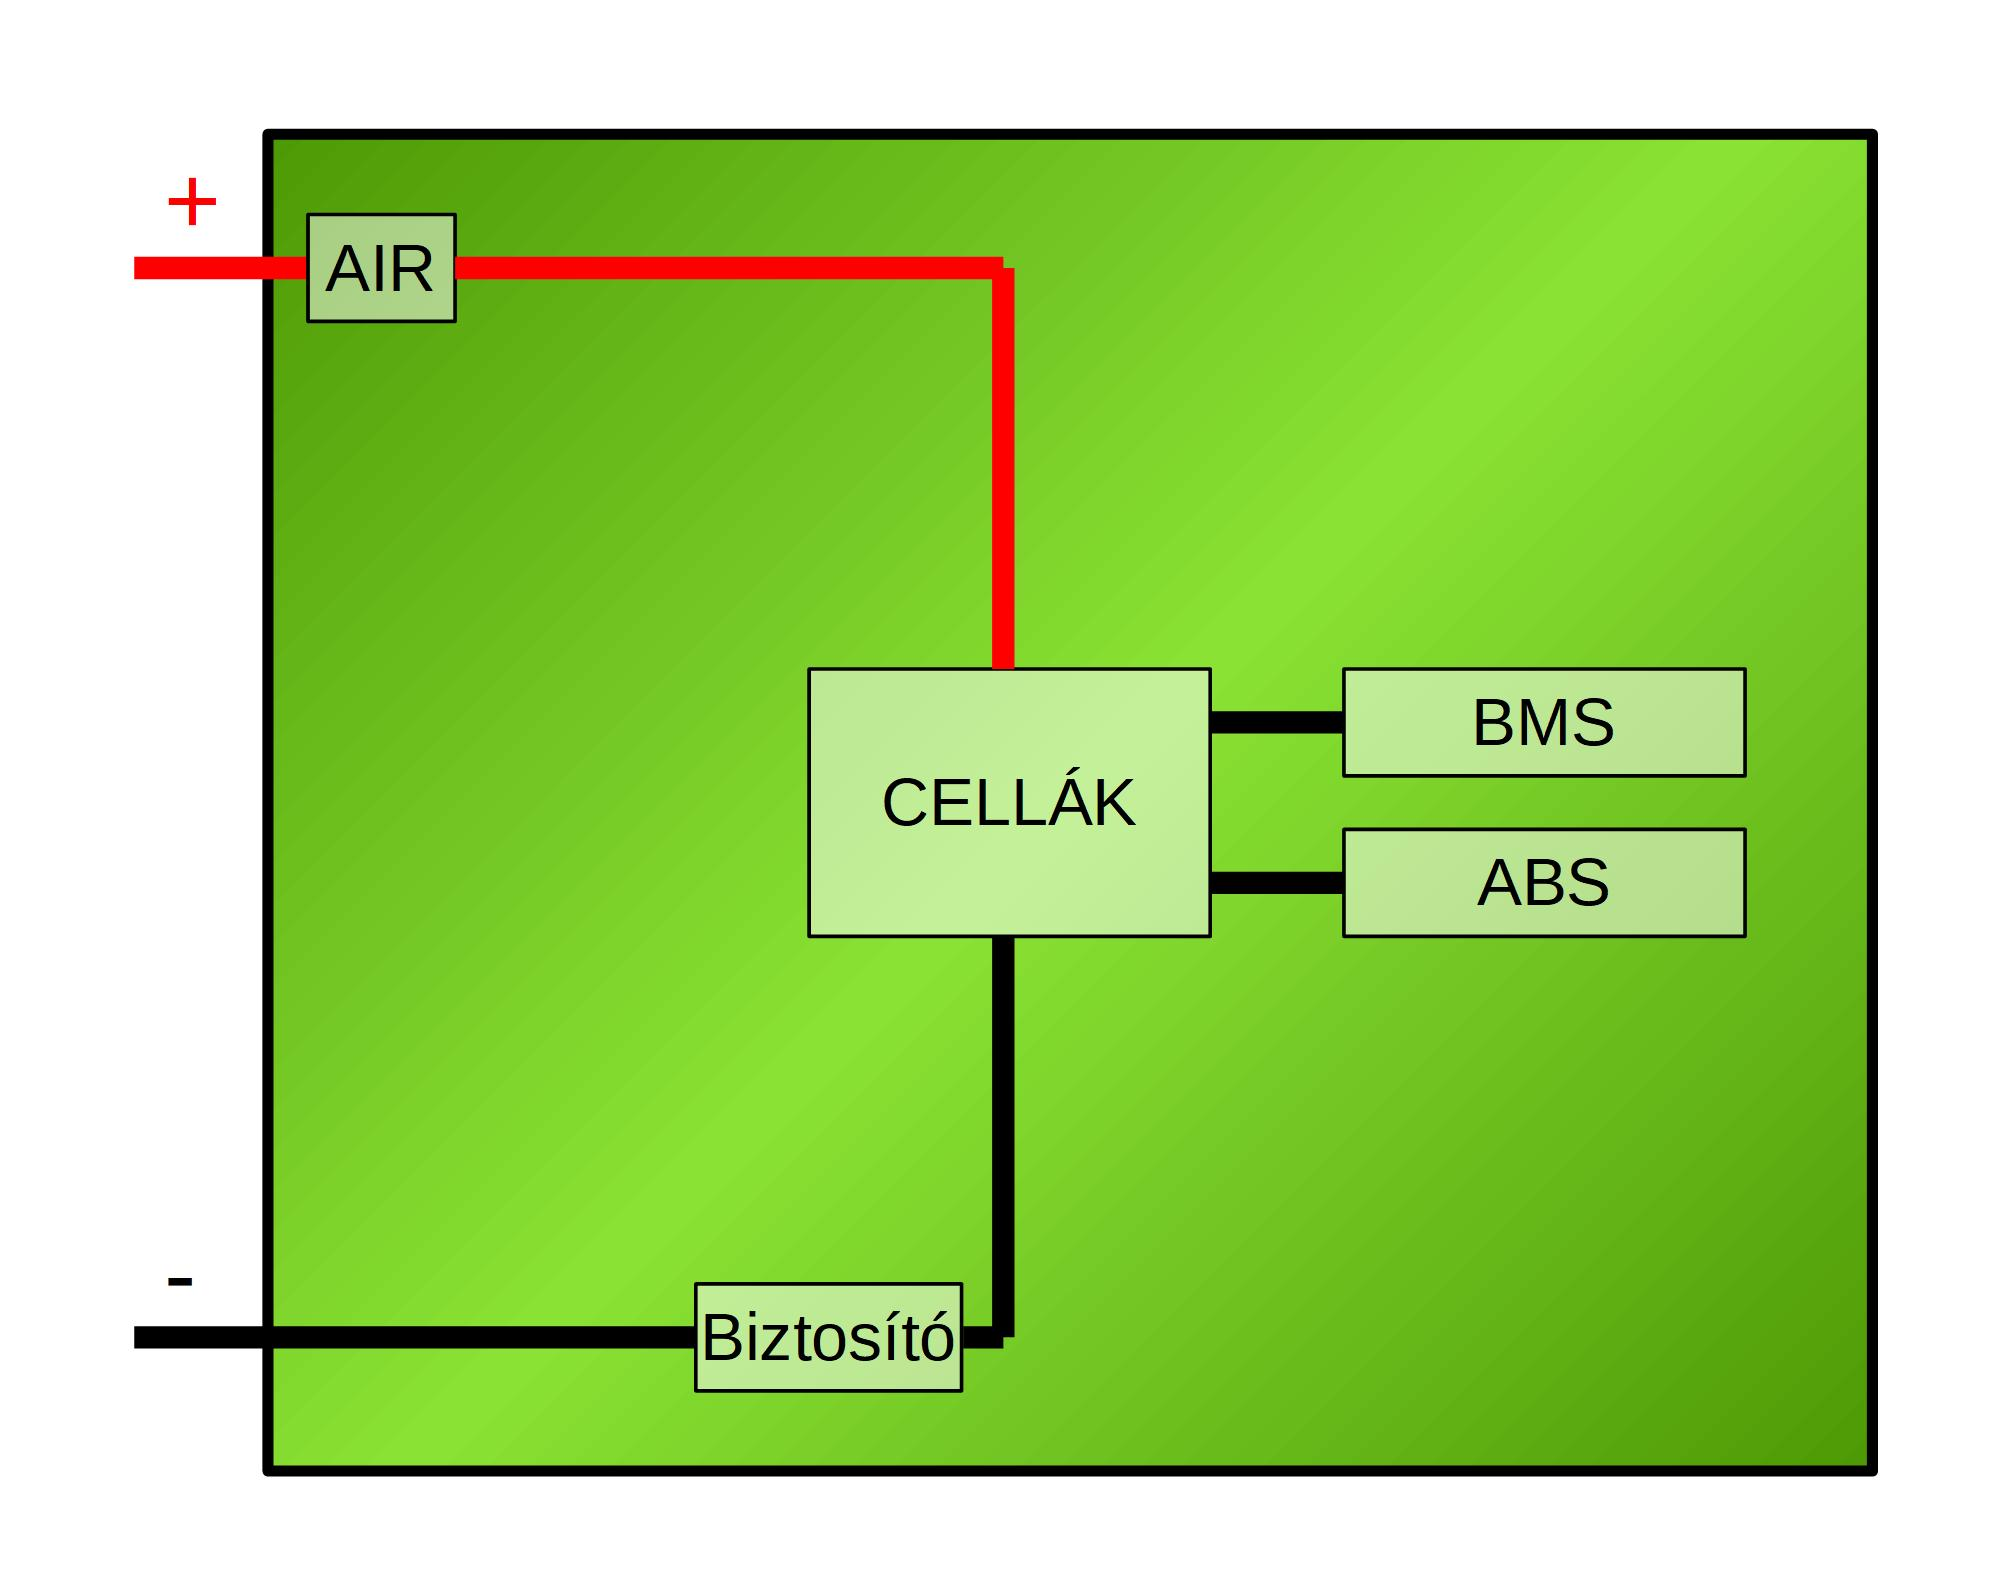 03_battery_wires_fuse_airp.jpg